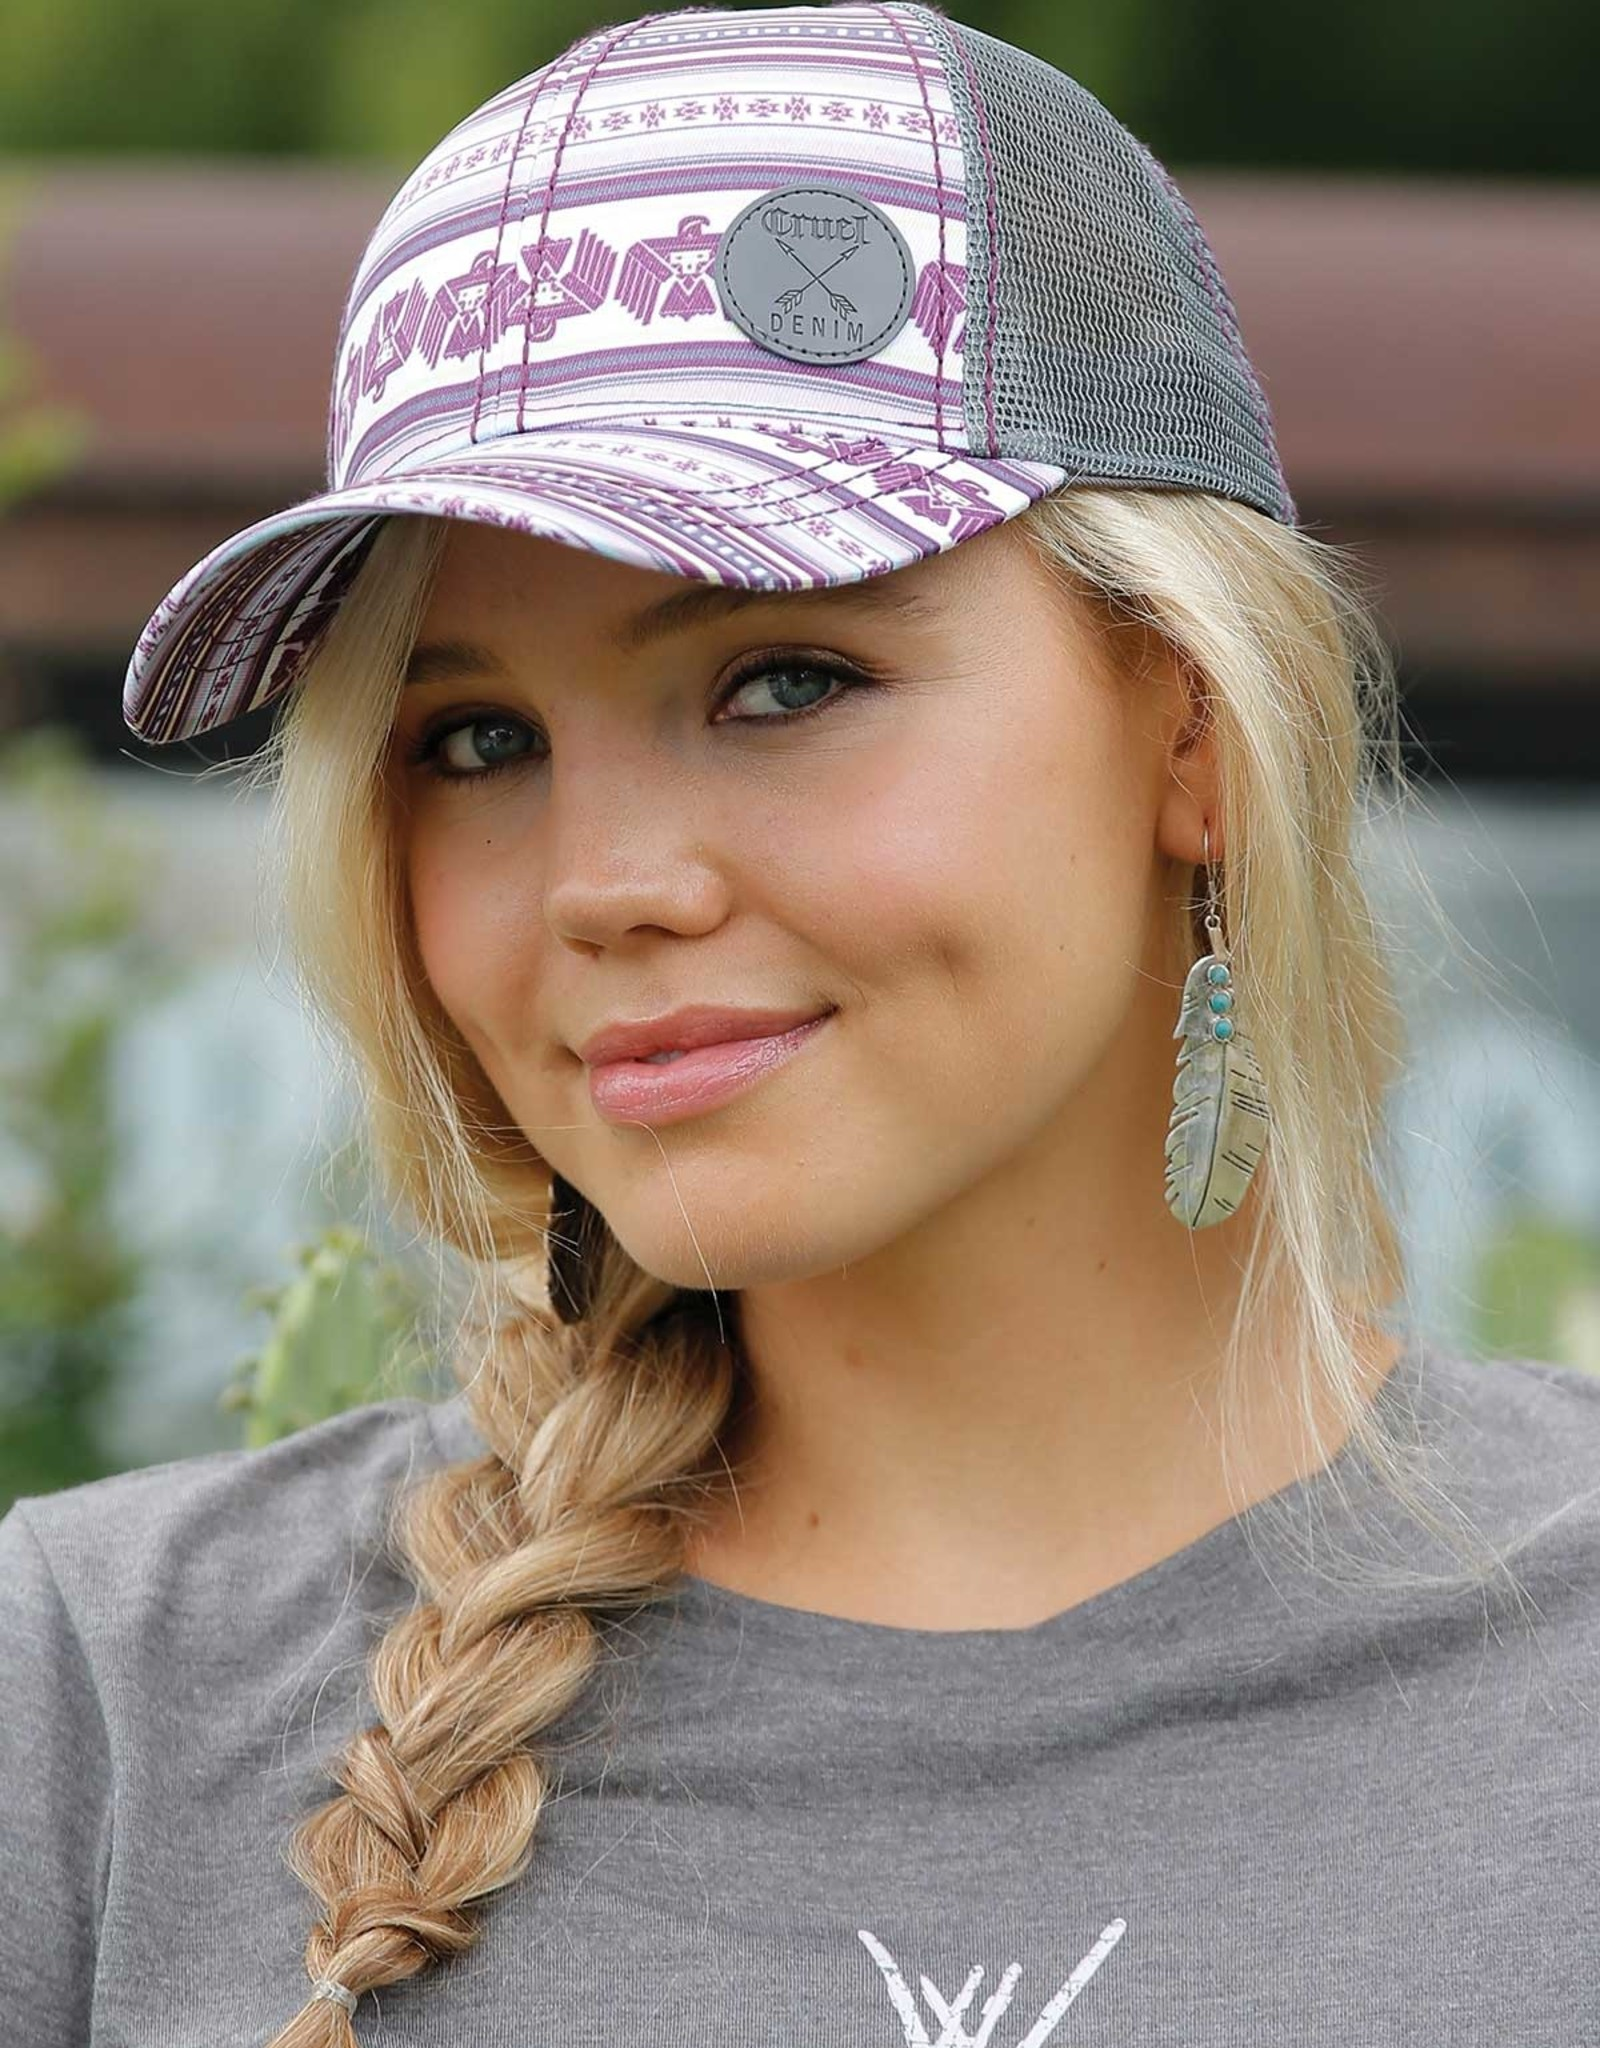 Cruel Girl Purple Thunderbird Ball Cap